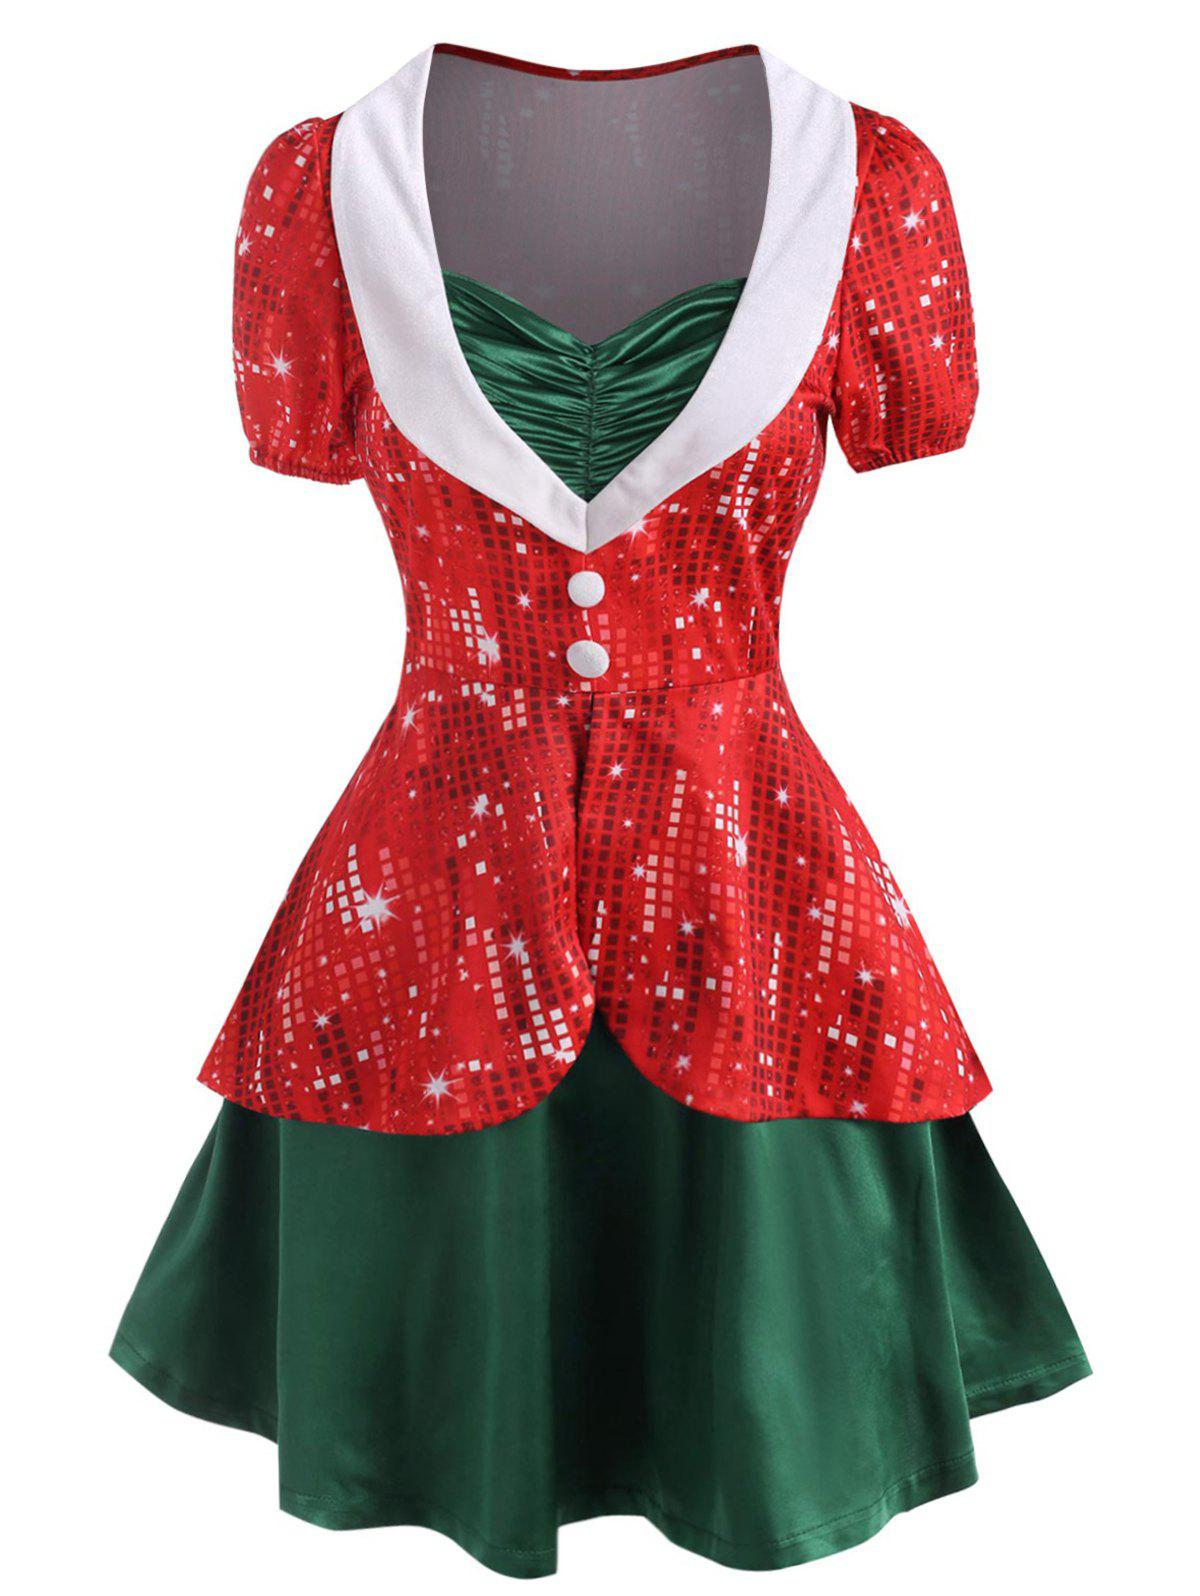 Hot Christmas 3D Rhinestone Print Ruched Button Embellished Twofer Dress